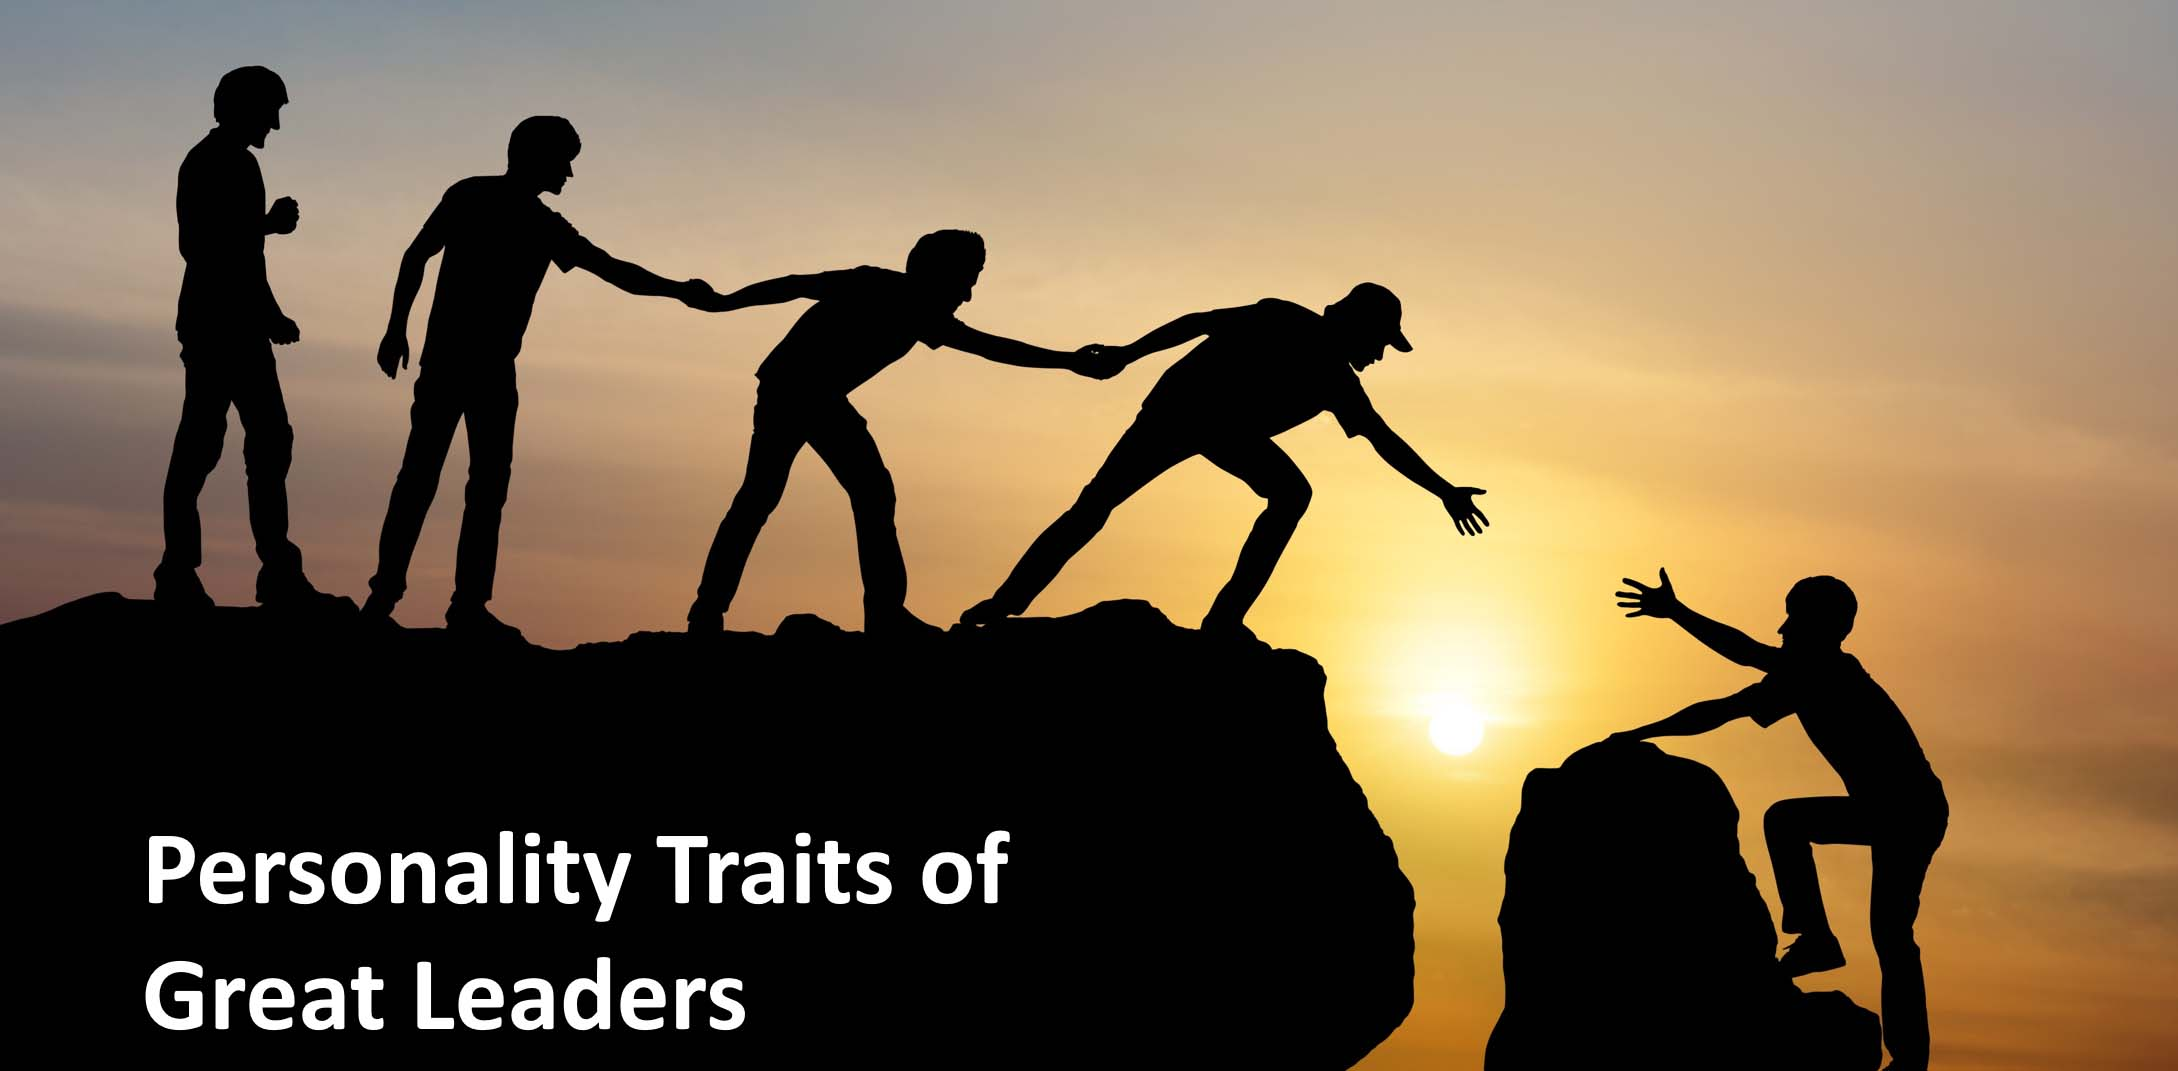 Great Leaders - Personality Traits